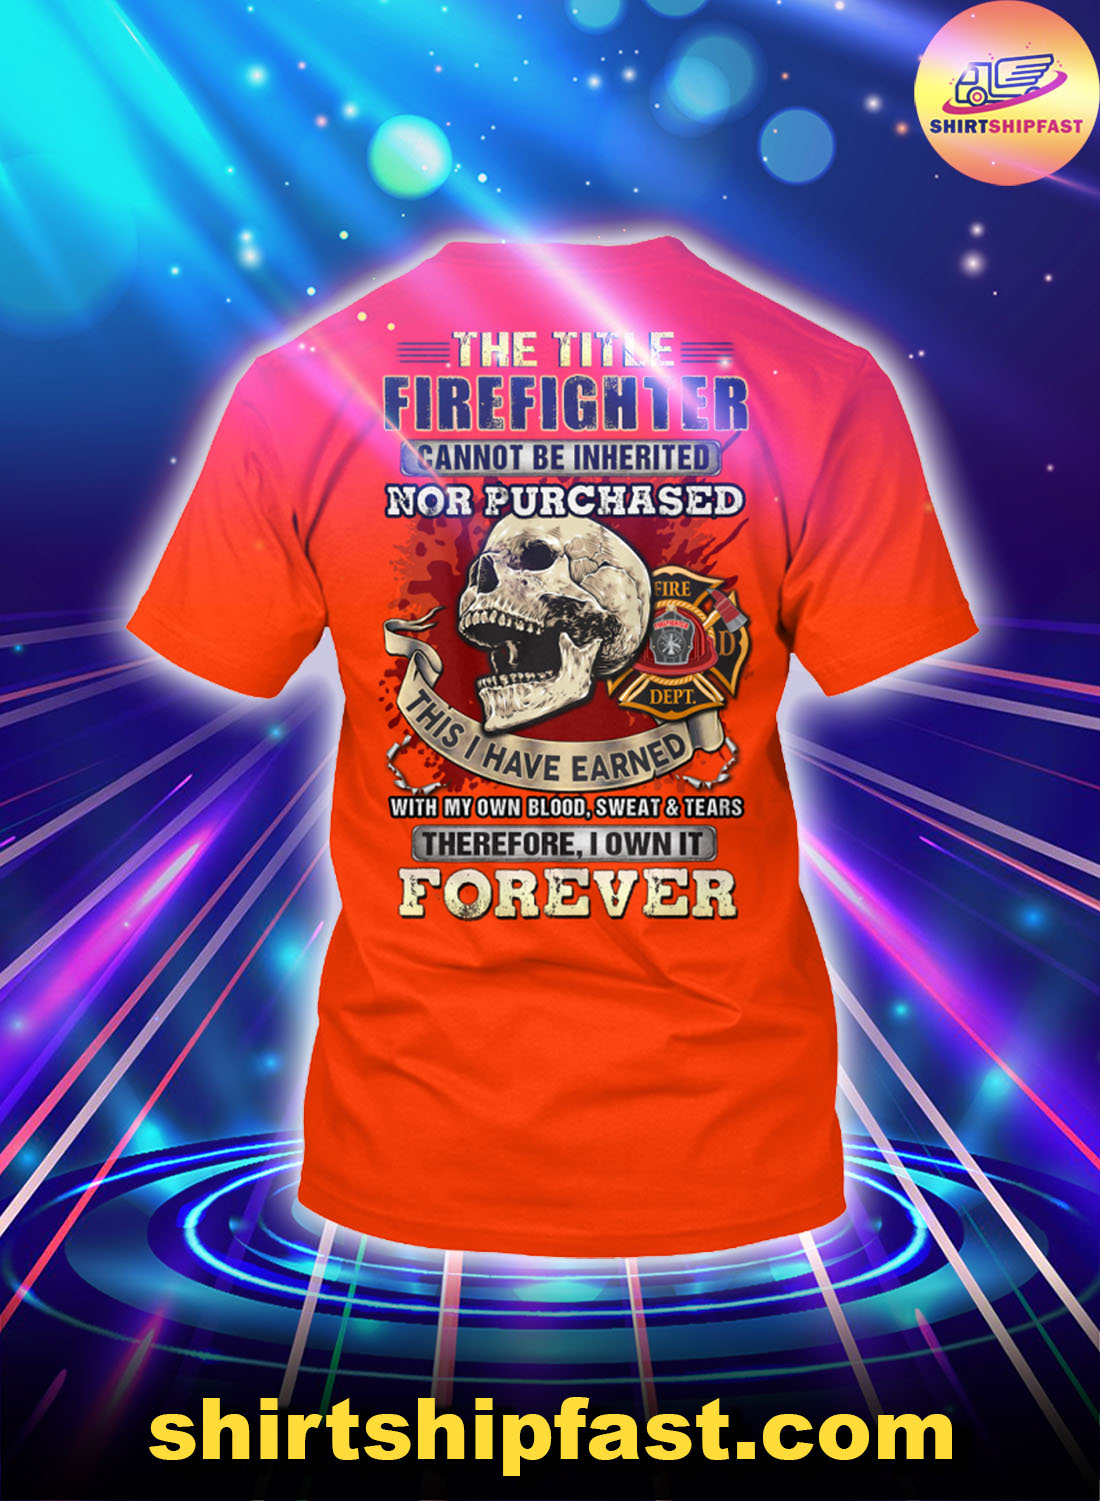 Skull-The-title-firefighter-cannot-be-inherited-nor-purchased-shirt -1